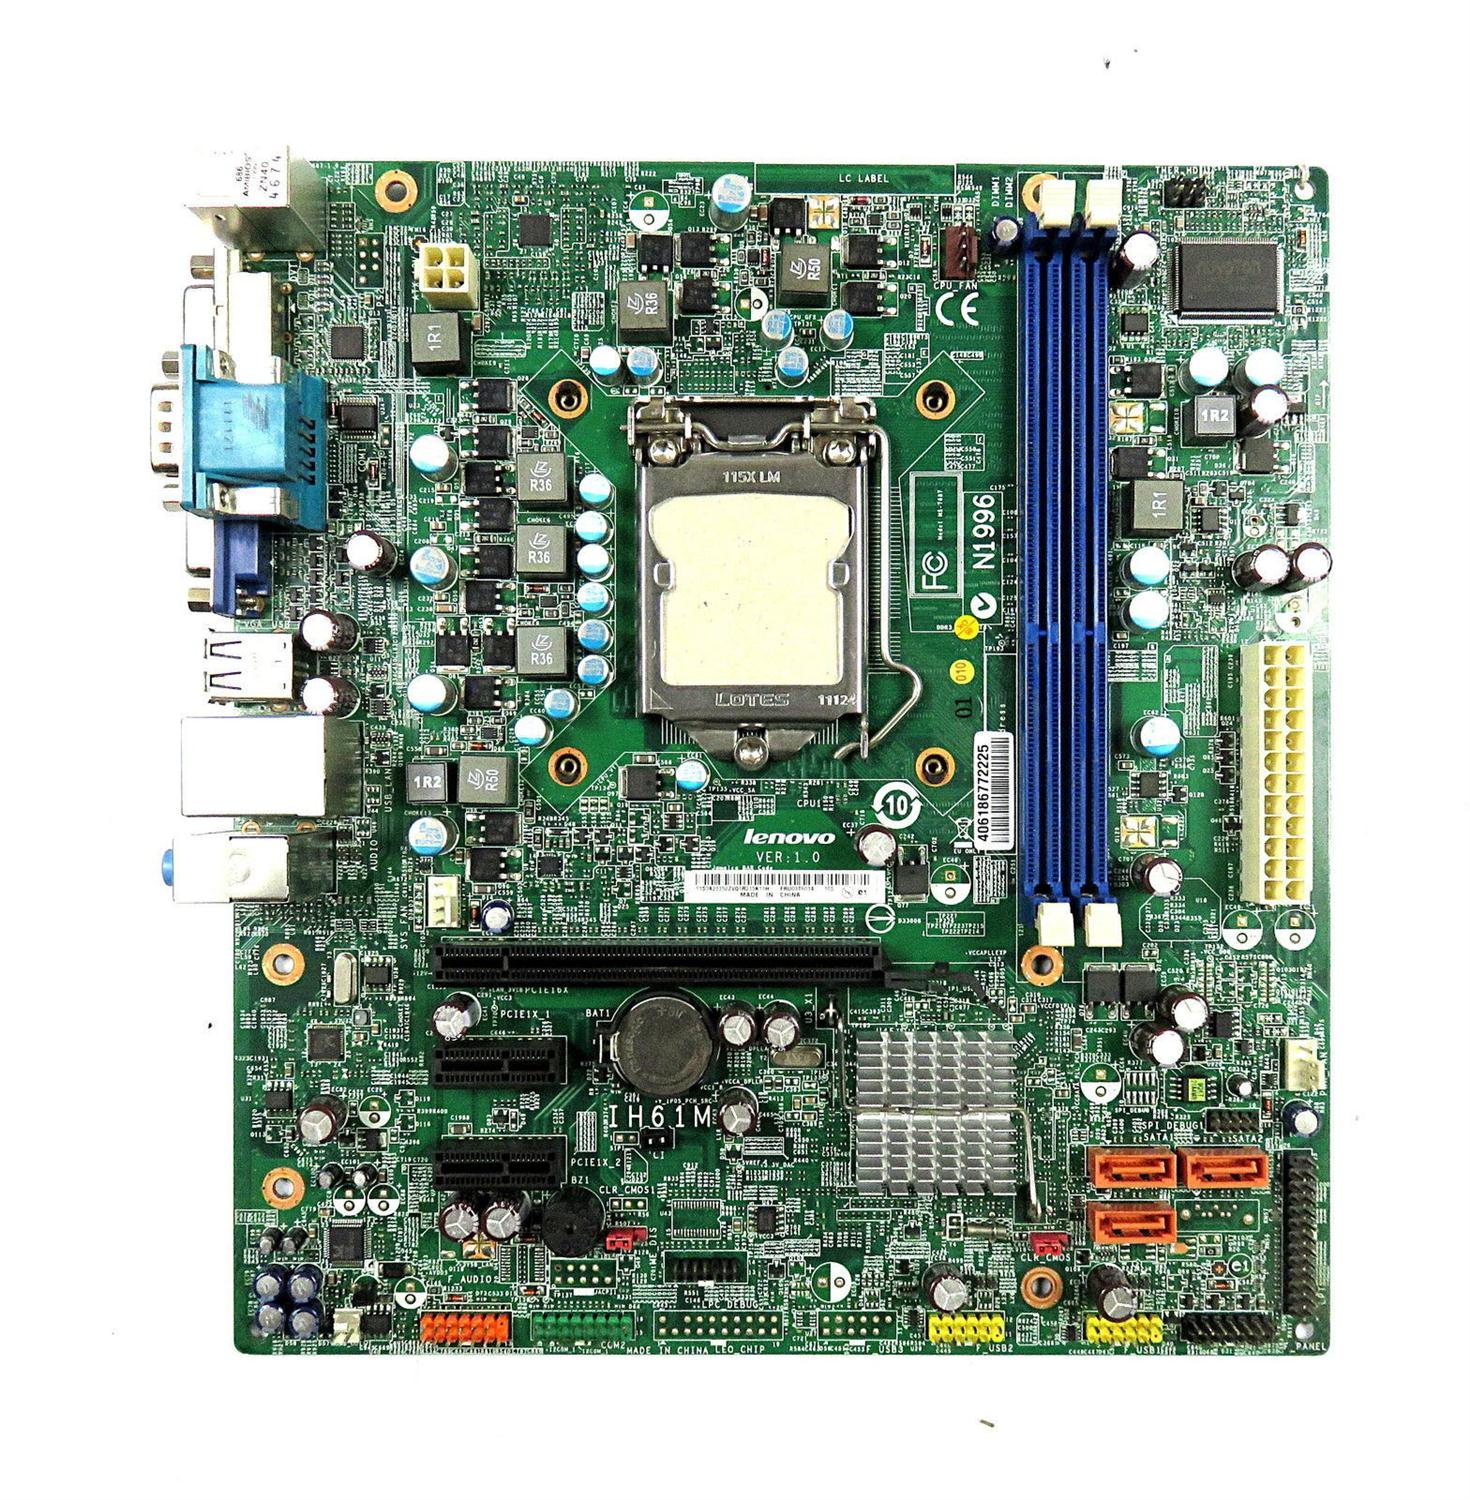 Original disassemble, for Lenovo H61 motherboard original disassemble IH61M V: 1.0 1155 pin CPU with baffle,100% tested good pt50638x original main juc7 820 00052414 pm50h2111 used disassemble